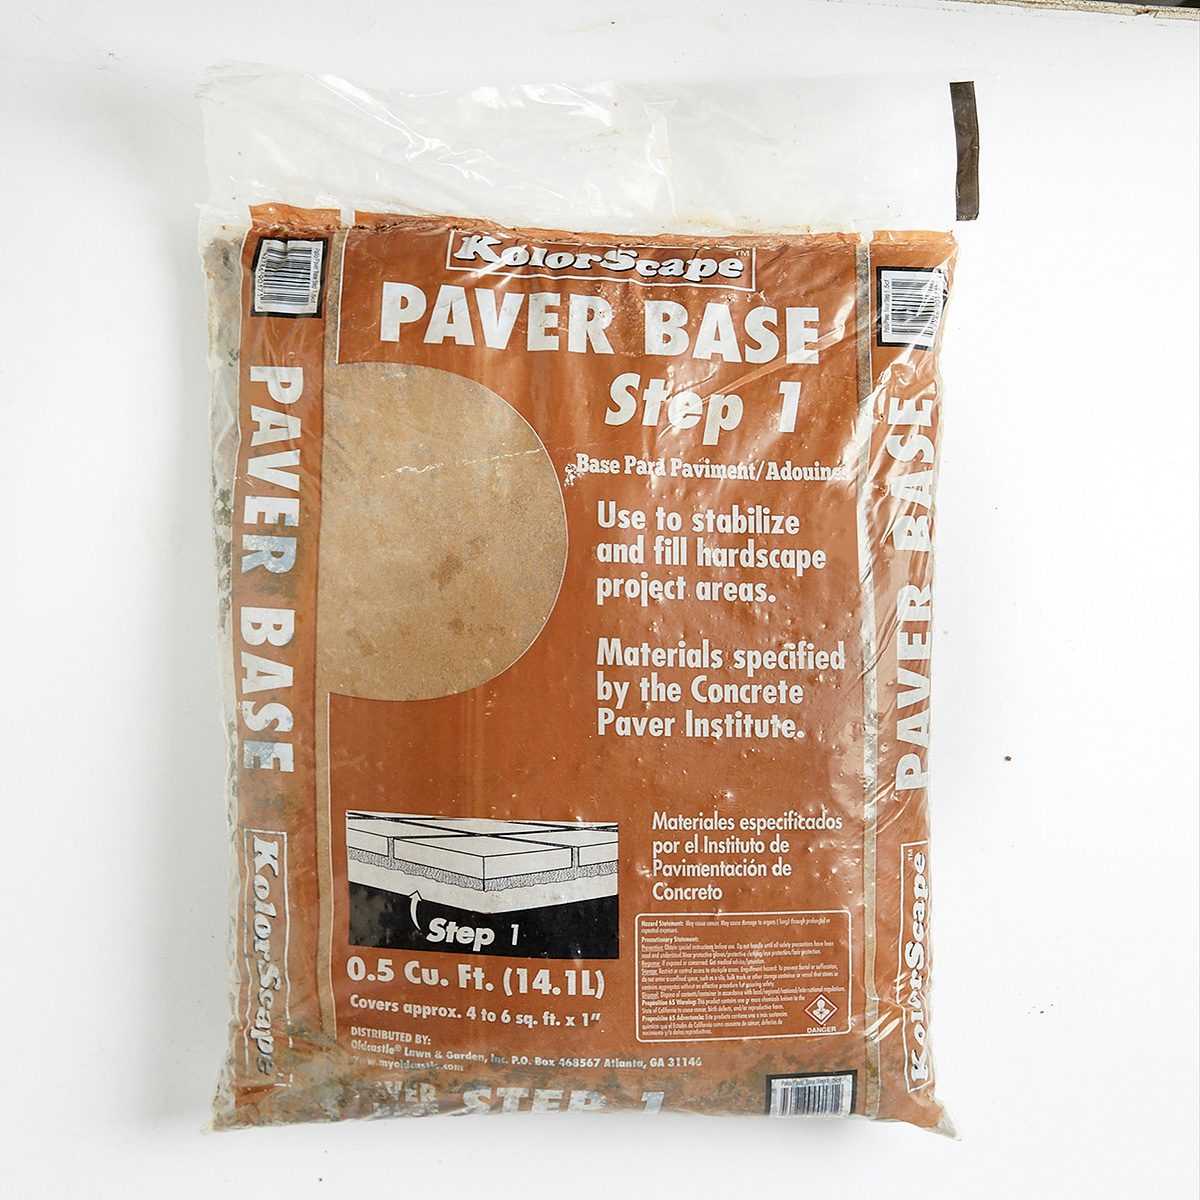 Sand as Paver Base